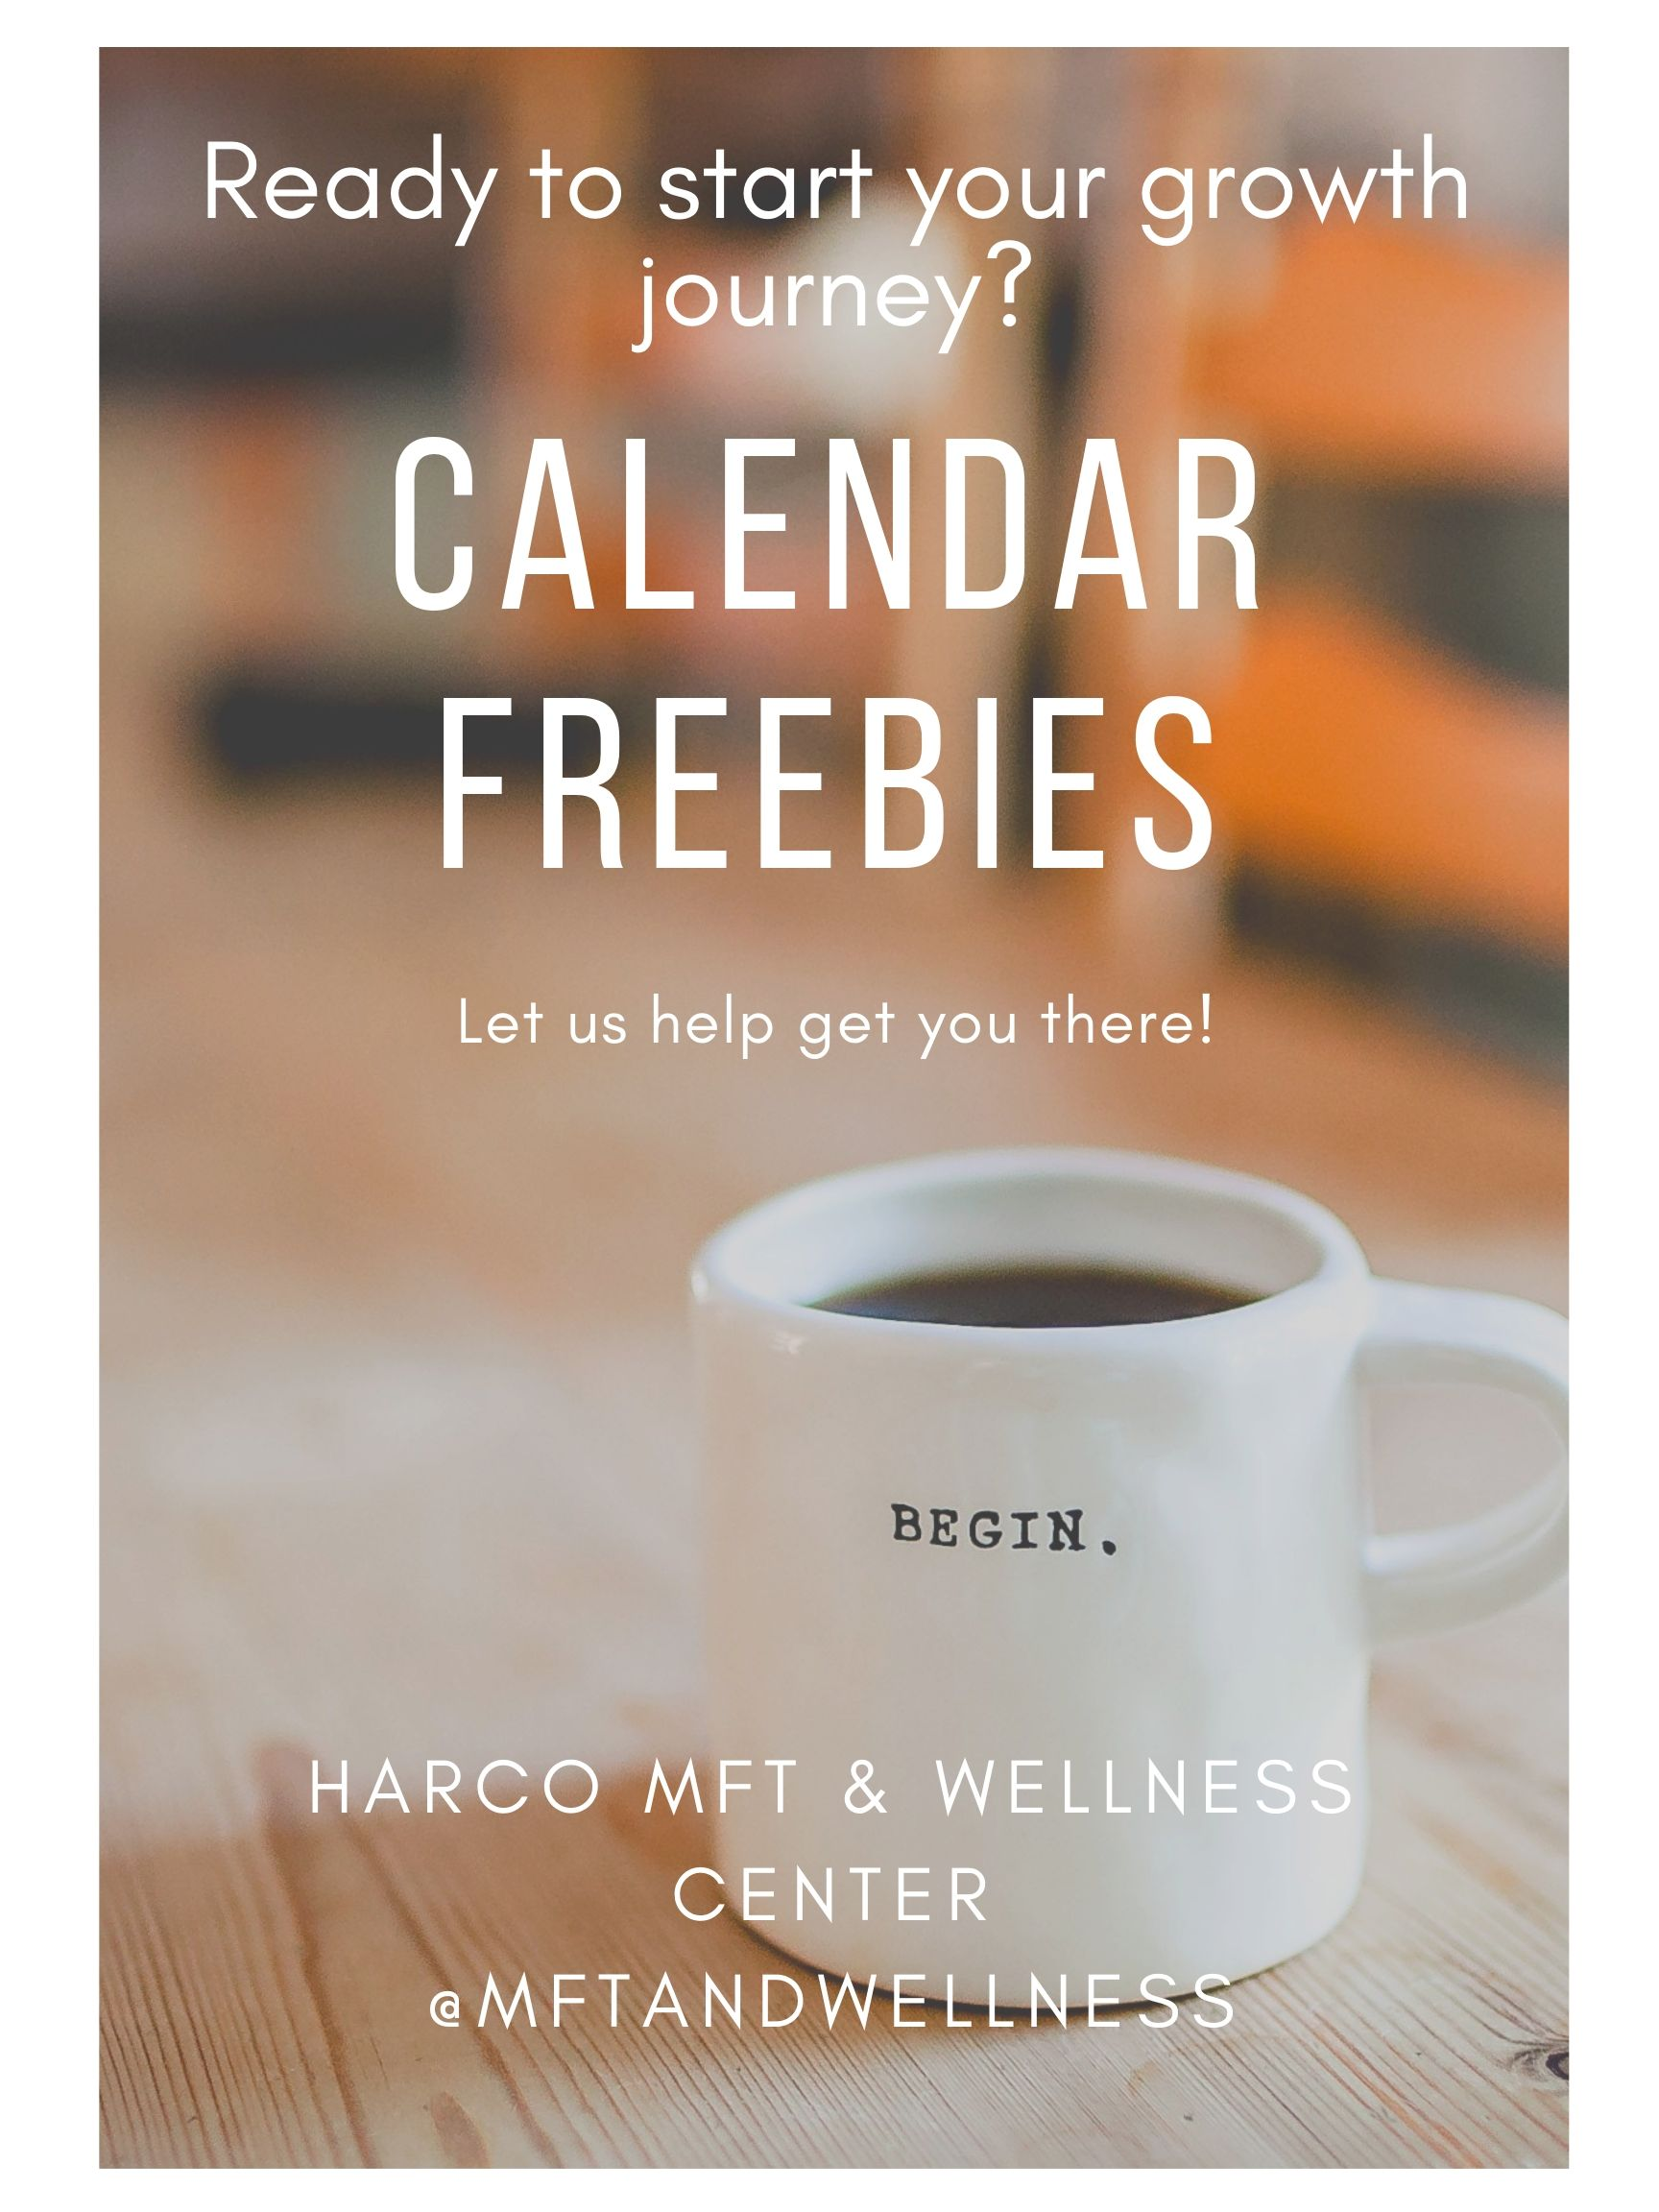 Three FREE calendars for you! - Do you need a fresh start with your relationships? Do the words self-care or burnout mean anything to you? Do you want to cultivate a mindfulness practice?…If so, we've created THREE FREEBIES just for you.Jump start your health with our quick and easy prompts tackling self-care, mindfulness, and healthy relationships. Three calendars with tons of strategies! All for FREE.